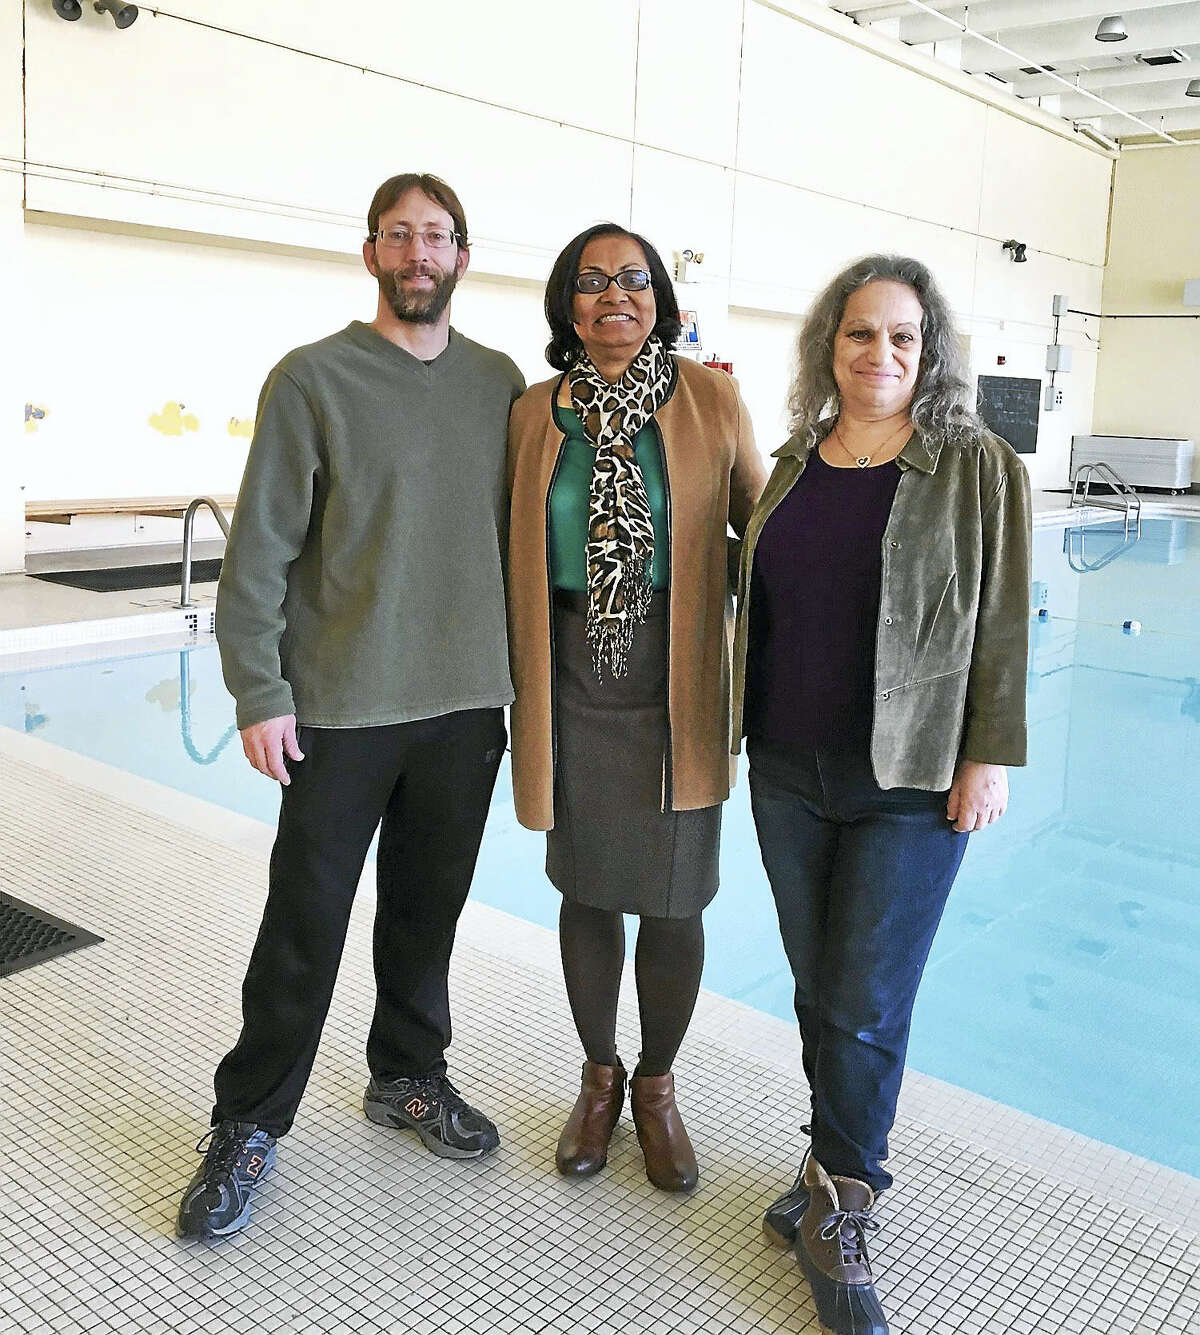 From left, Kacey Rosenfield, aquatic instructor at Conte-West Magnet School; Principal Dianne Spence and neighbor Heidi Korrick at the pool which will be opened to the public in a short trial run.